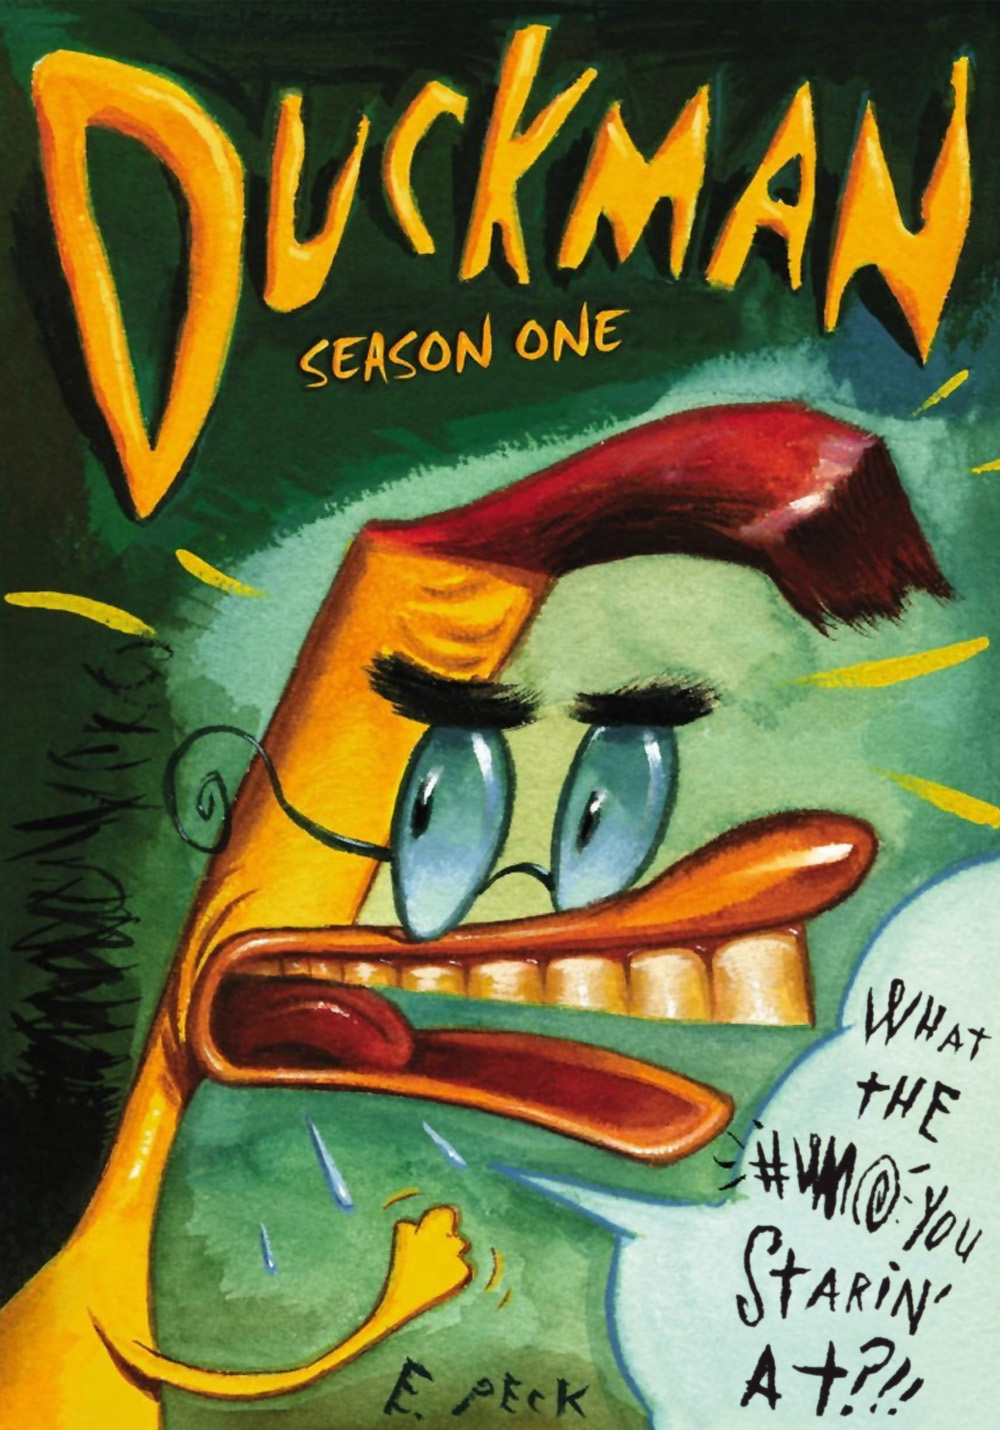 Duckman Private Dick Family Man Imdbpro